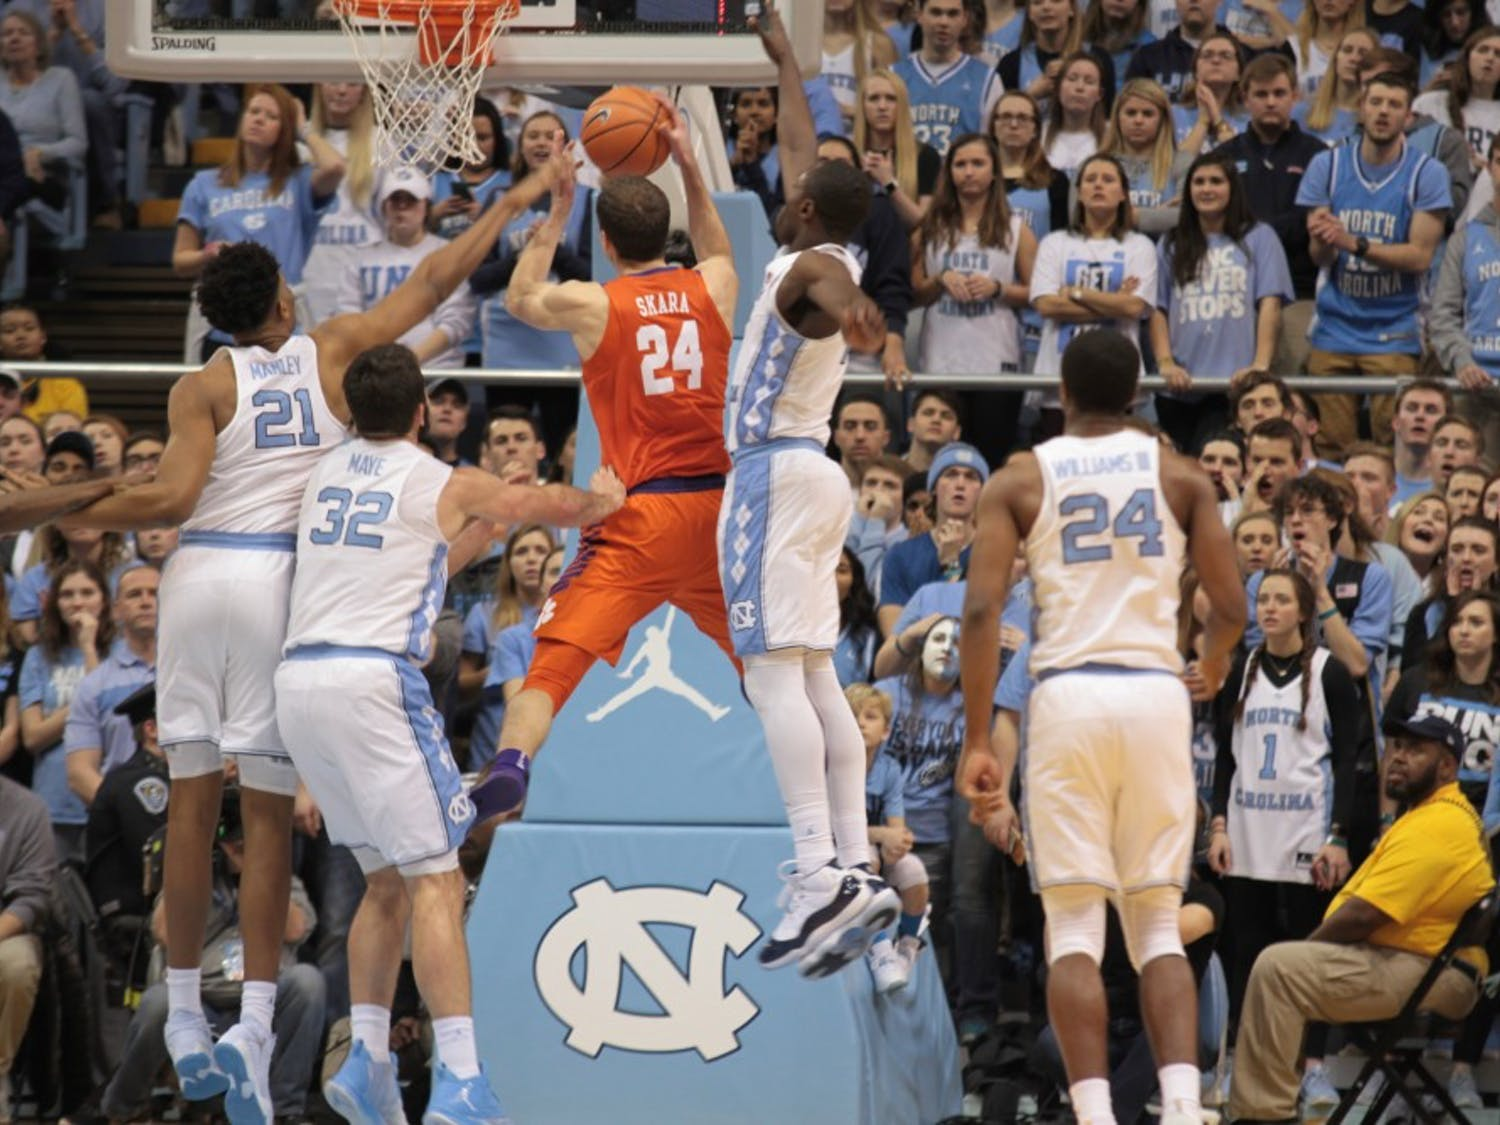 The No. 15 North Carolina men's basketball team won its 59th straight home game over No. 20 Clemson, keeping in place a historic winning streak that's been around since the presidency of Calvin Coolidge.